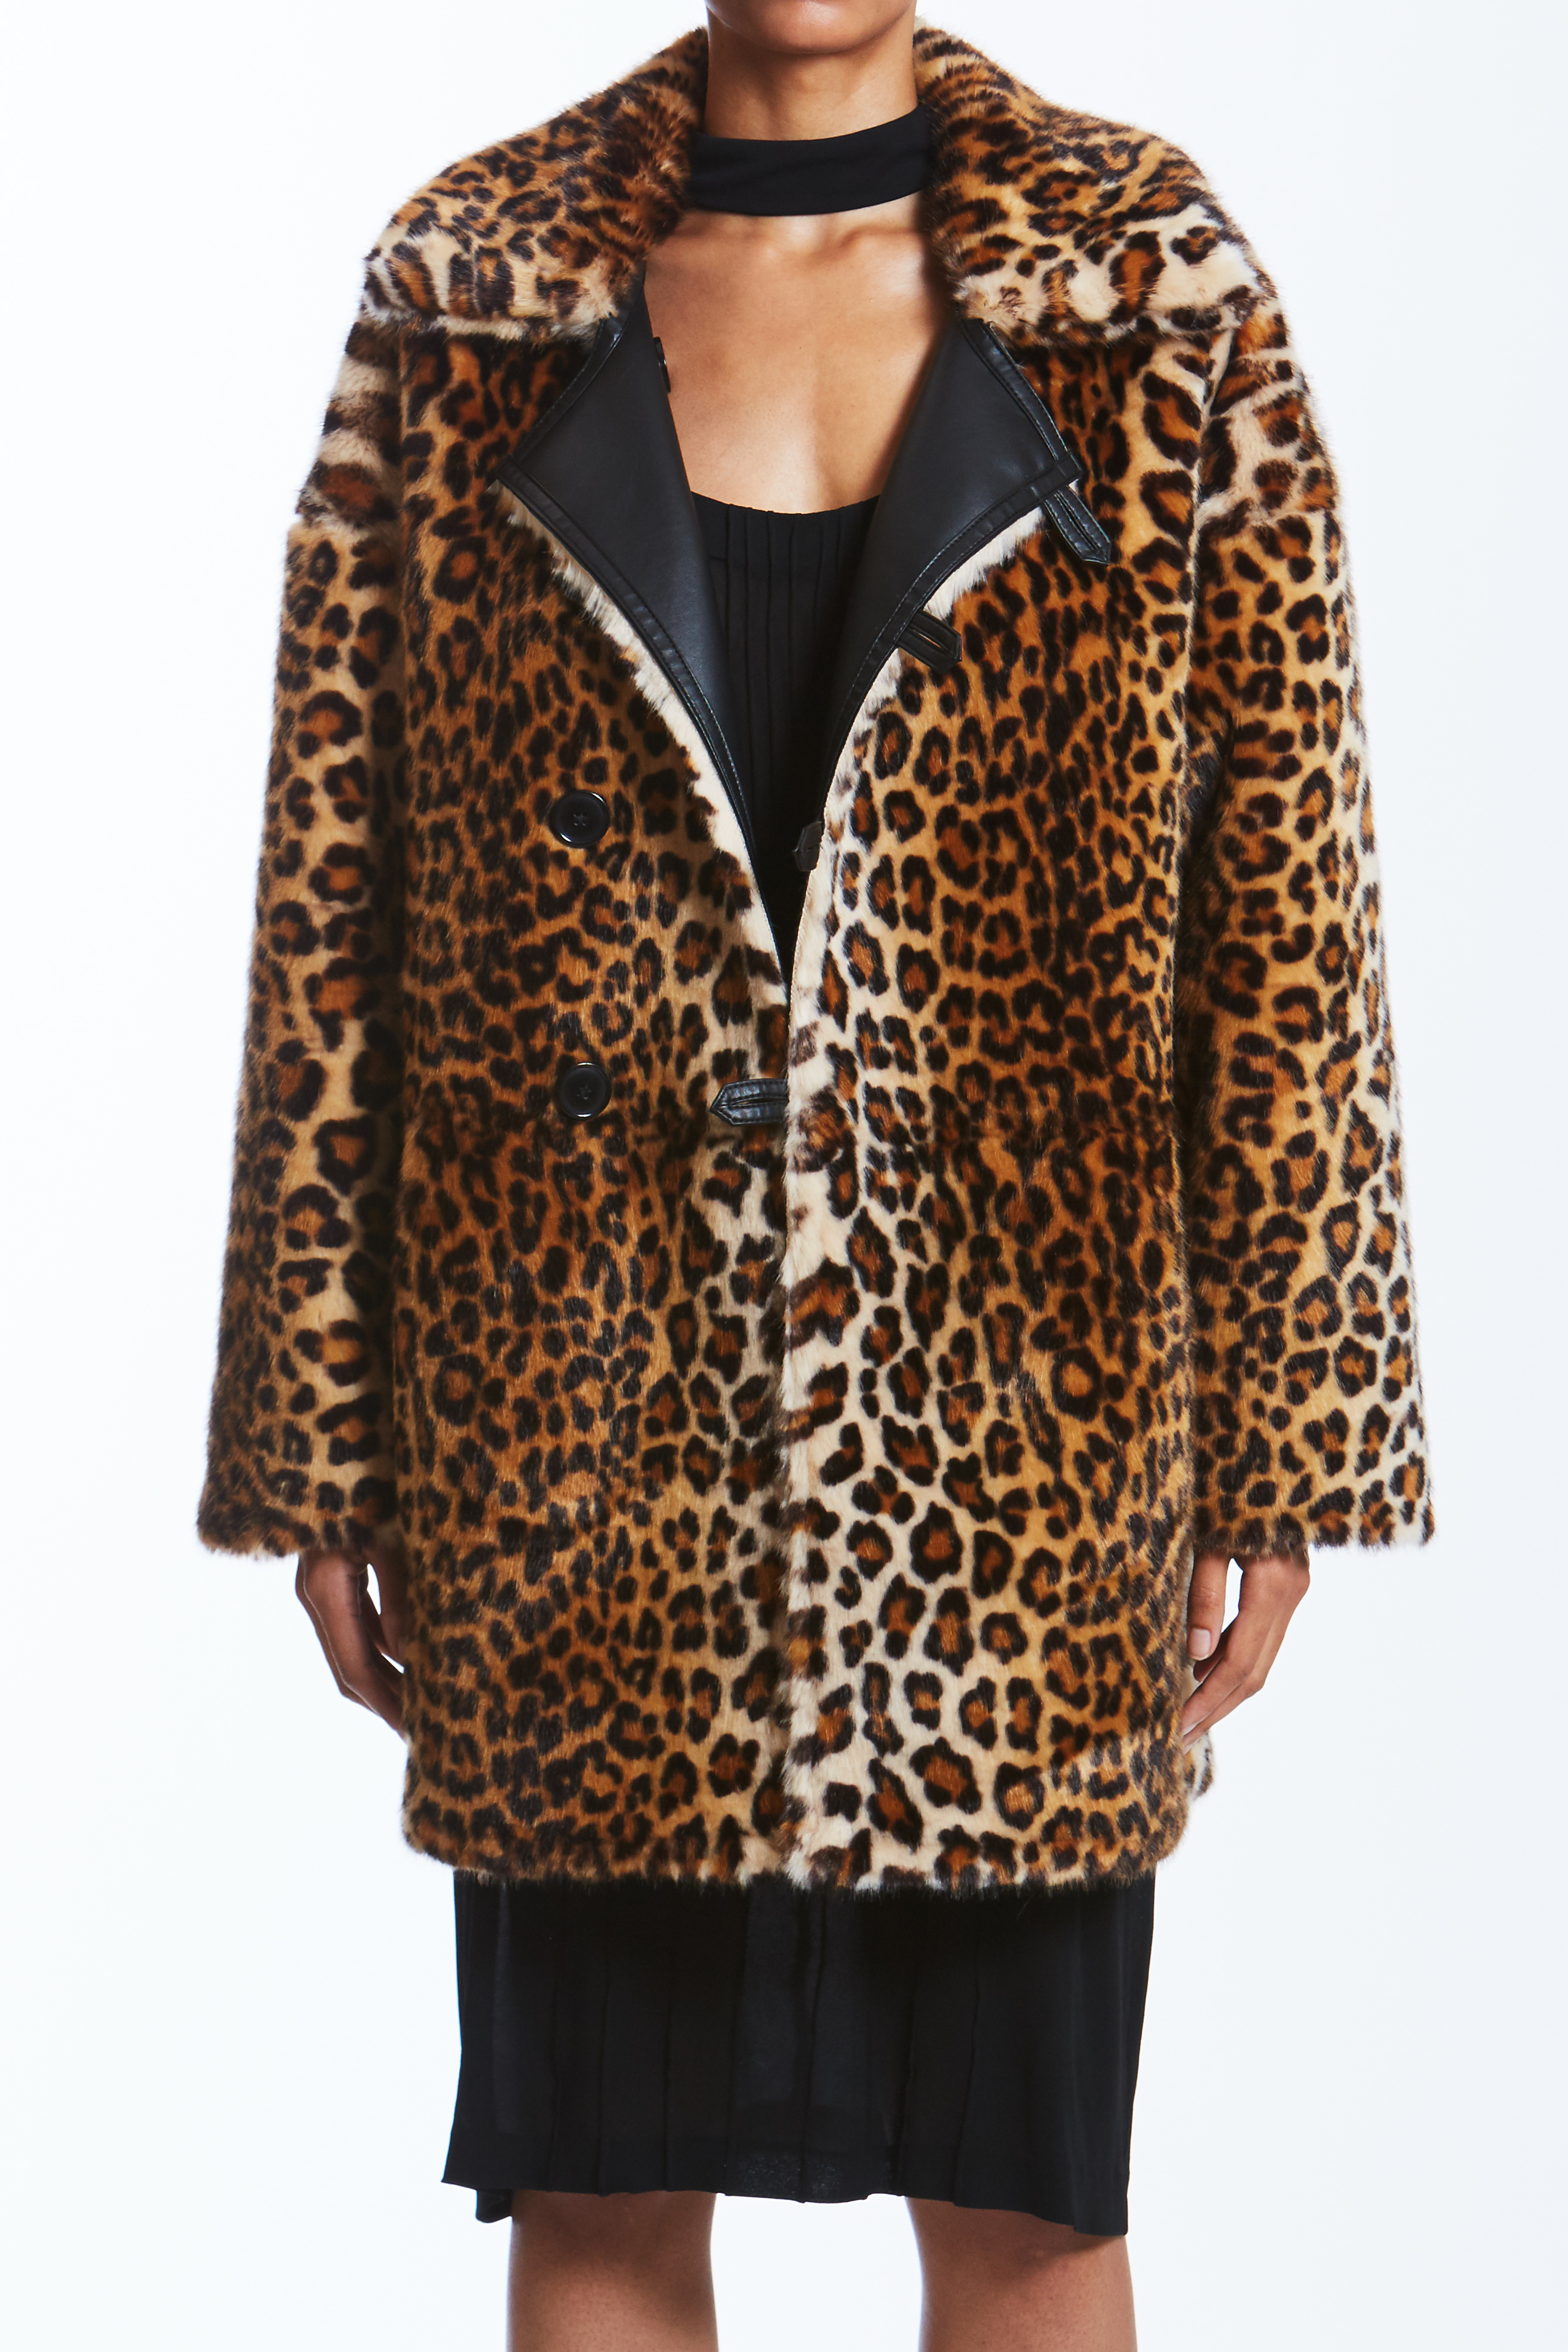 Sophia - Leopard by Maison Atia on curated-crowd.com